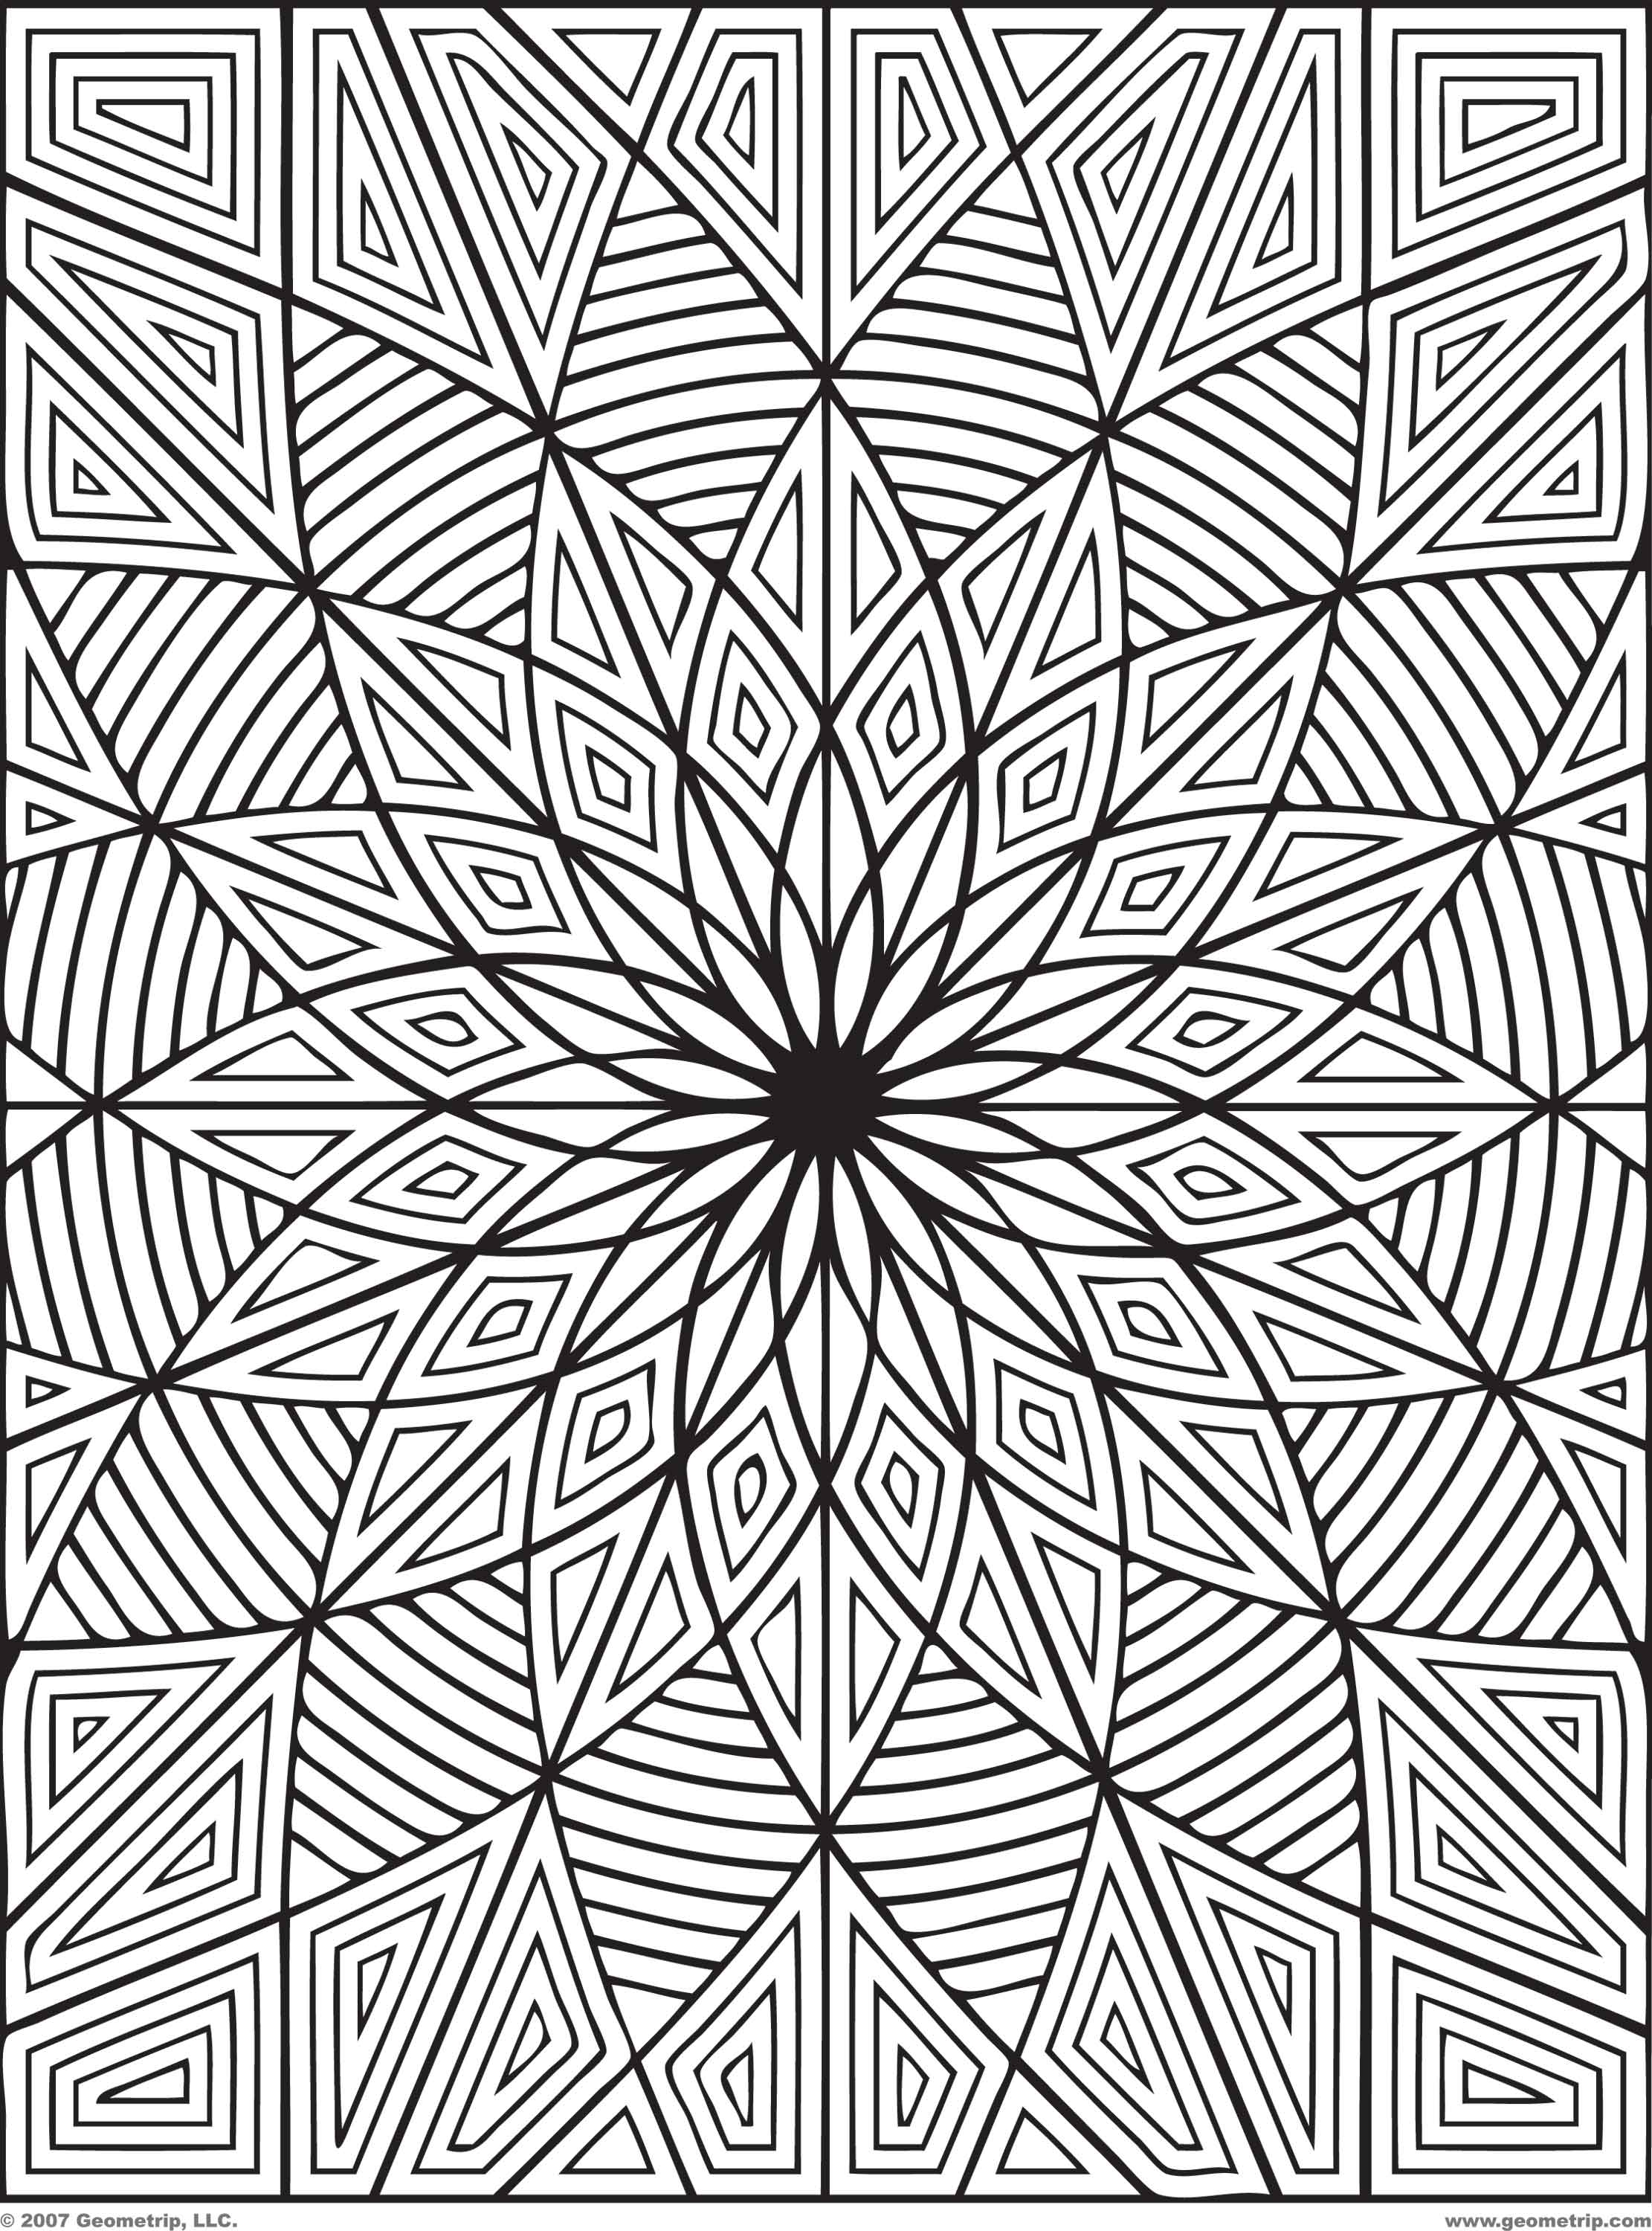 Cool Designs For Coloring